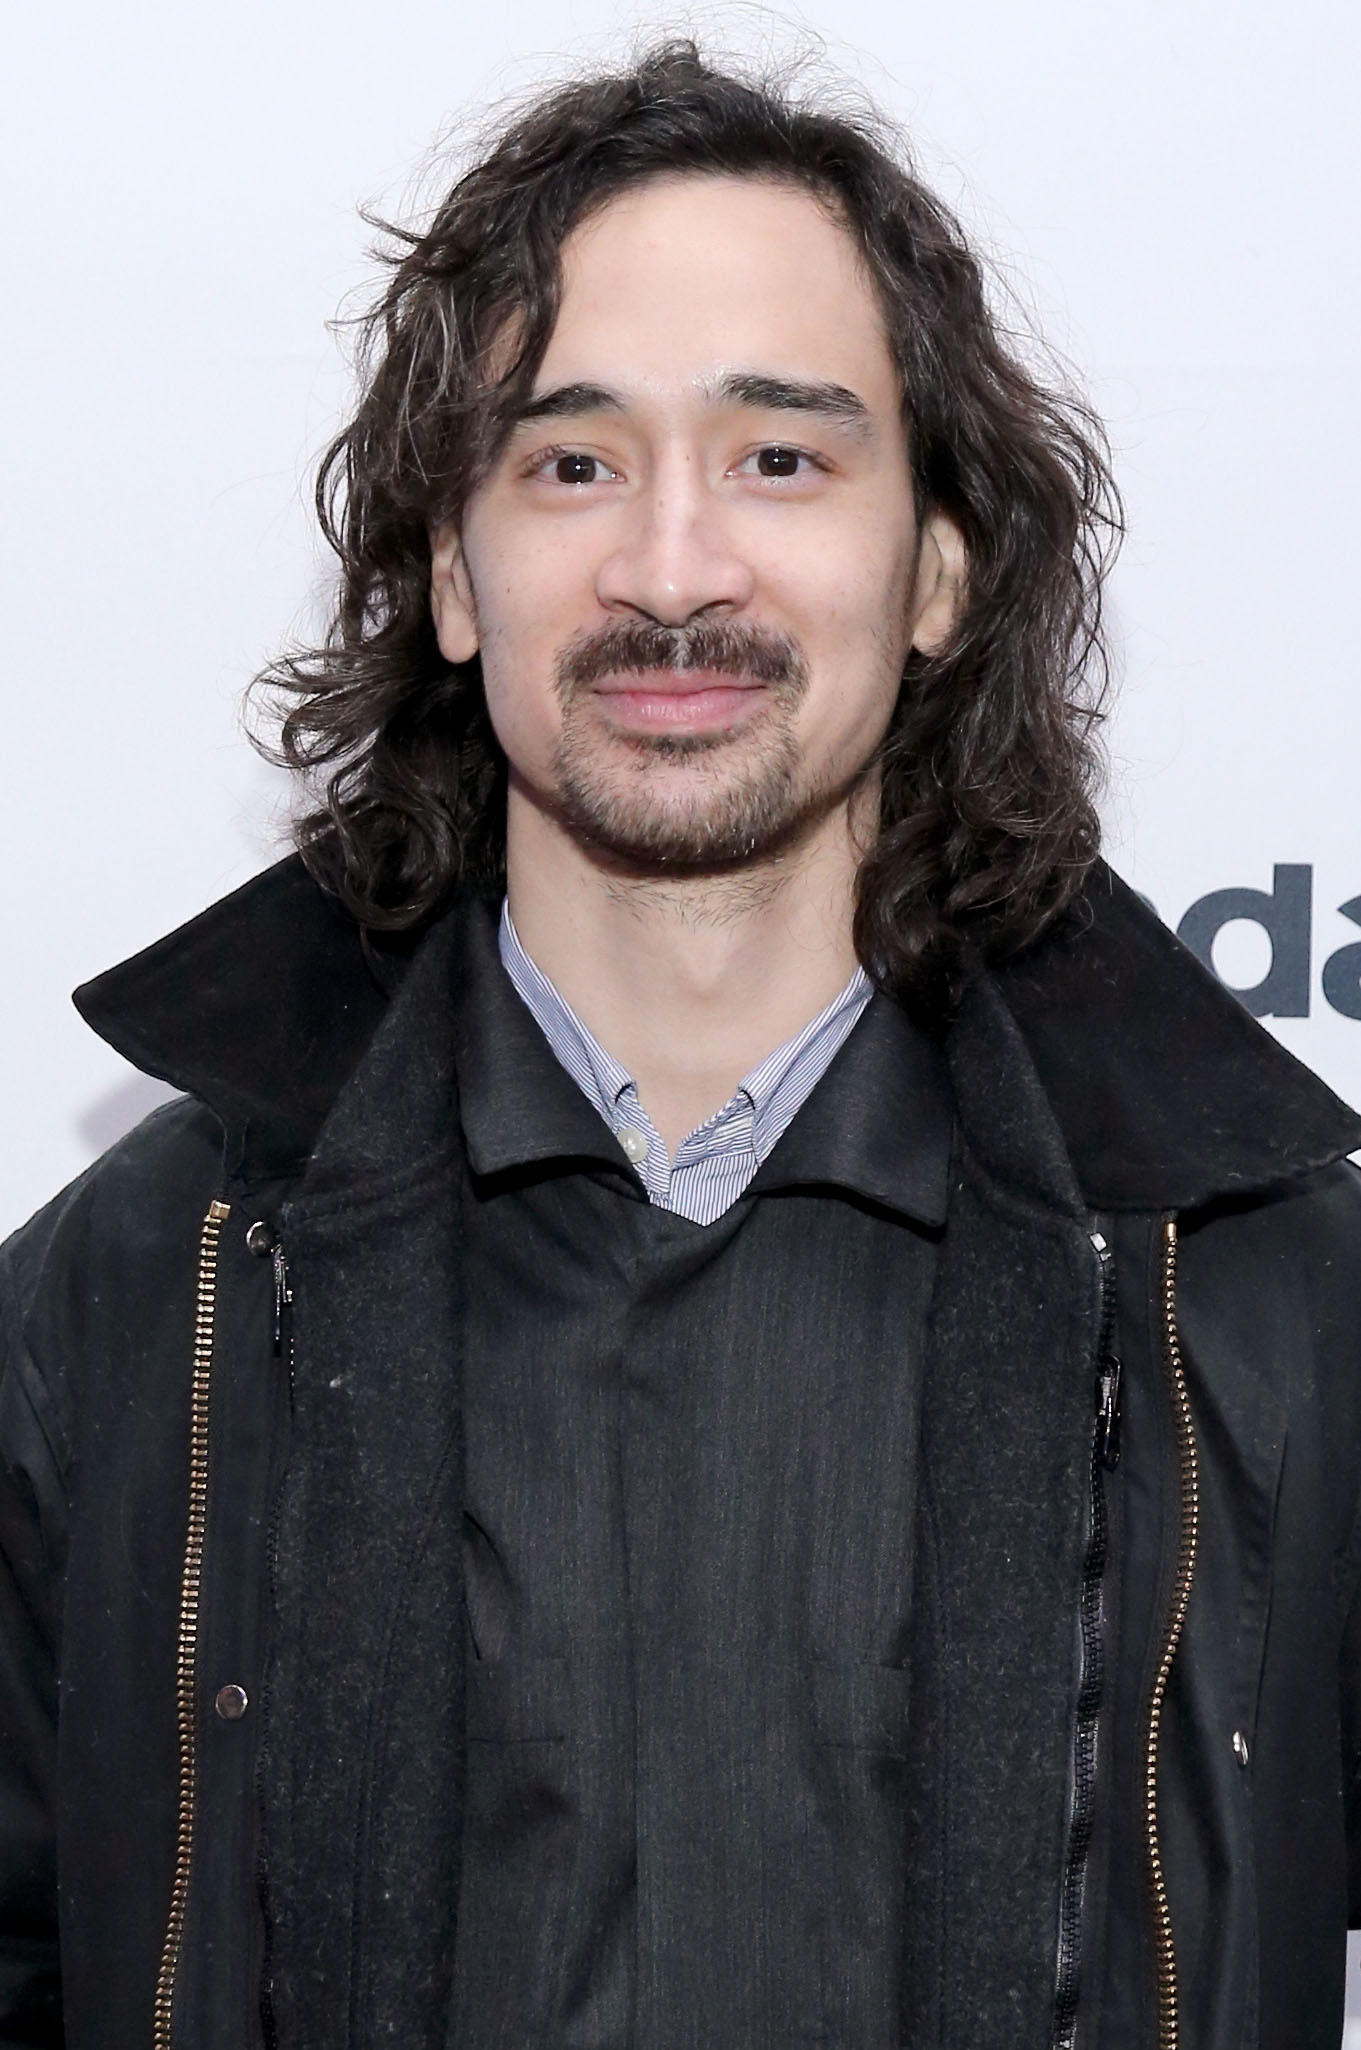 Jason Lew during the 2016 Sundance Film Festival.